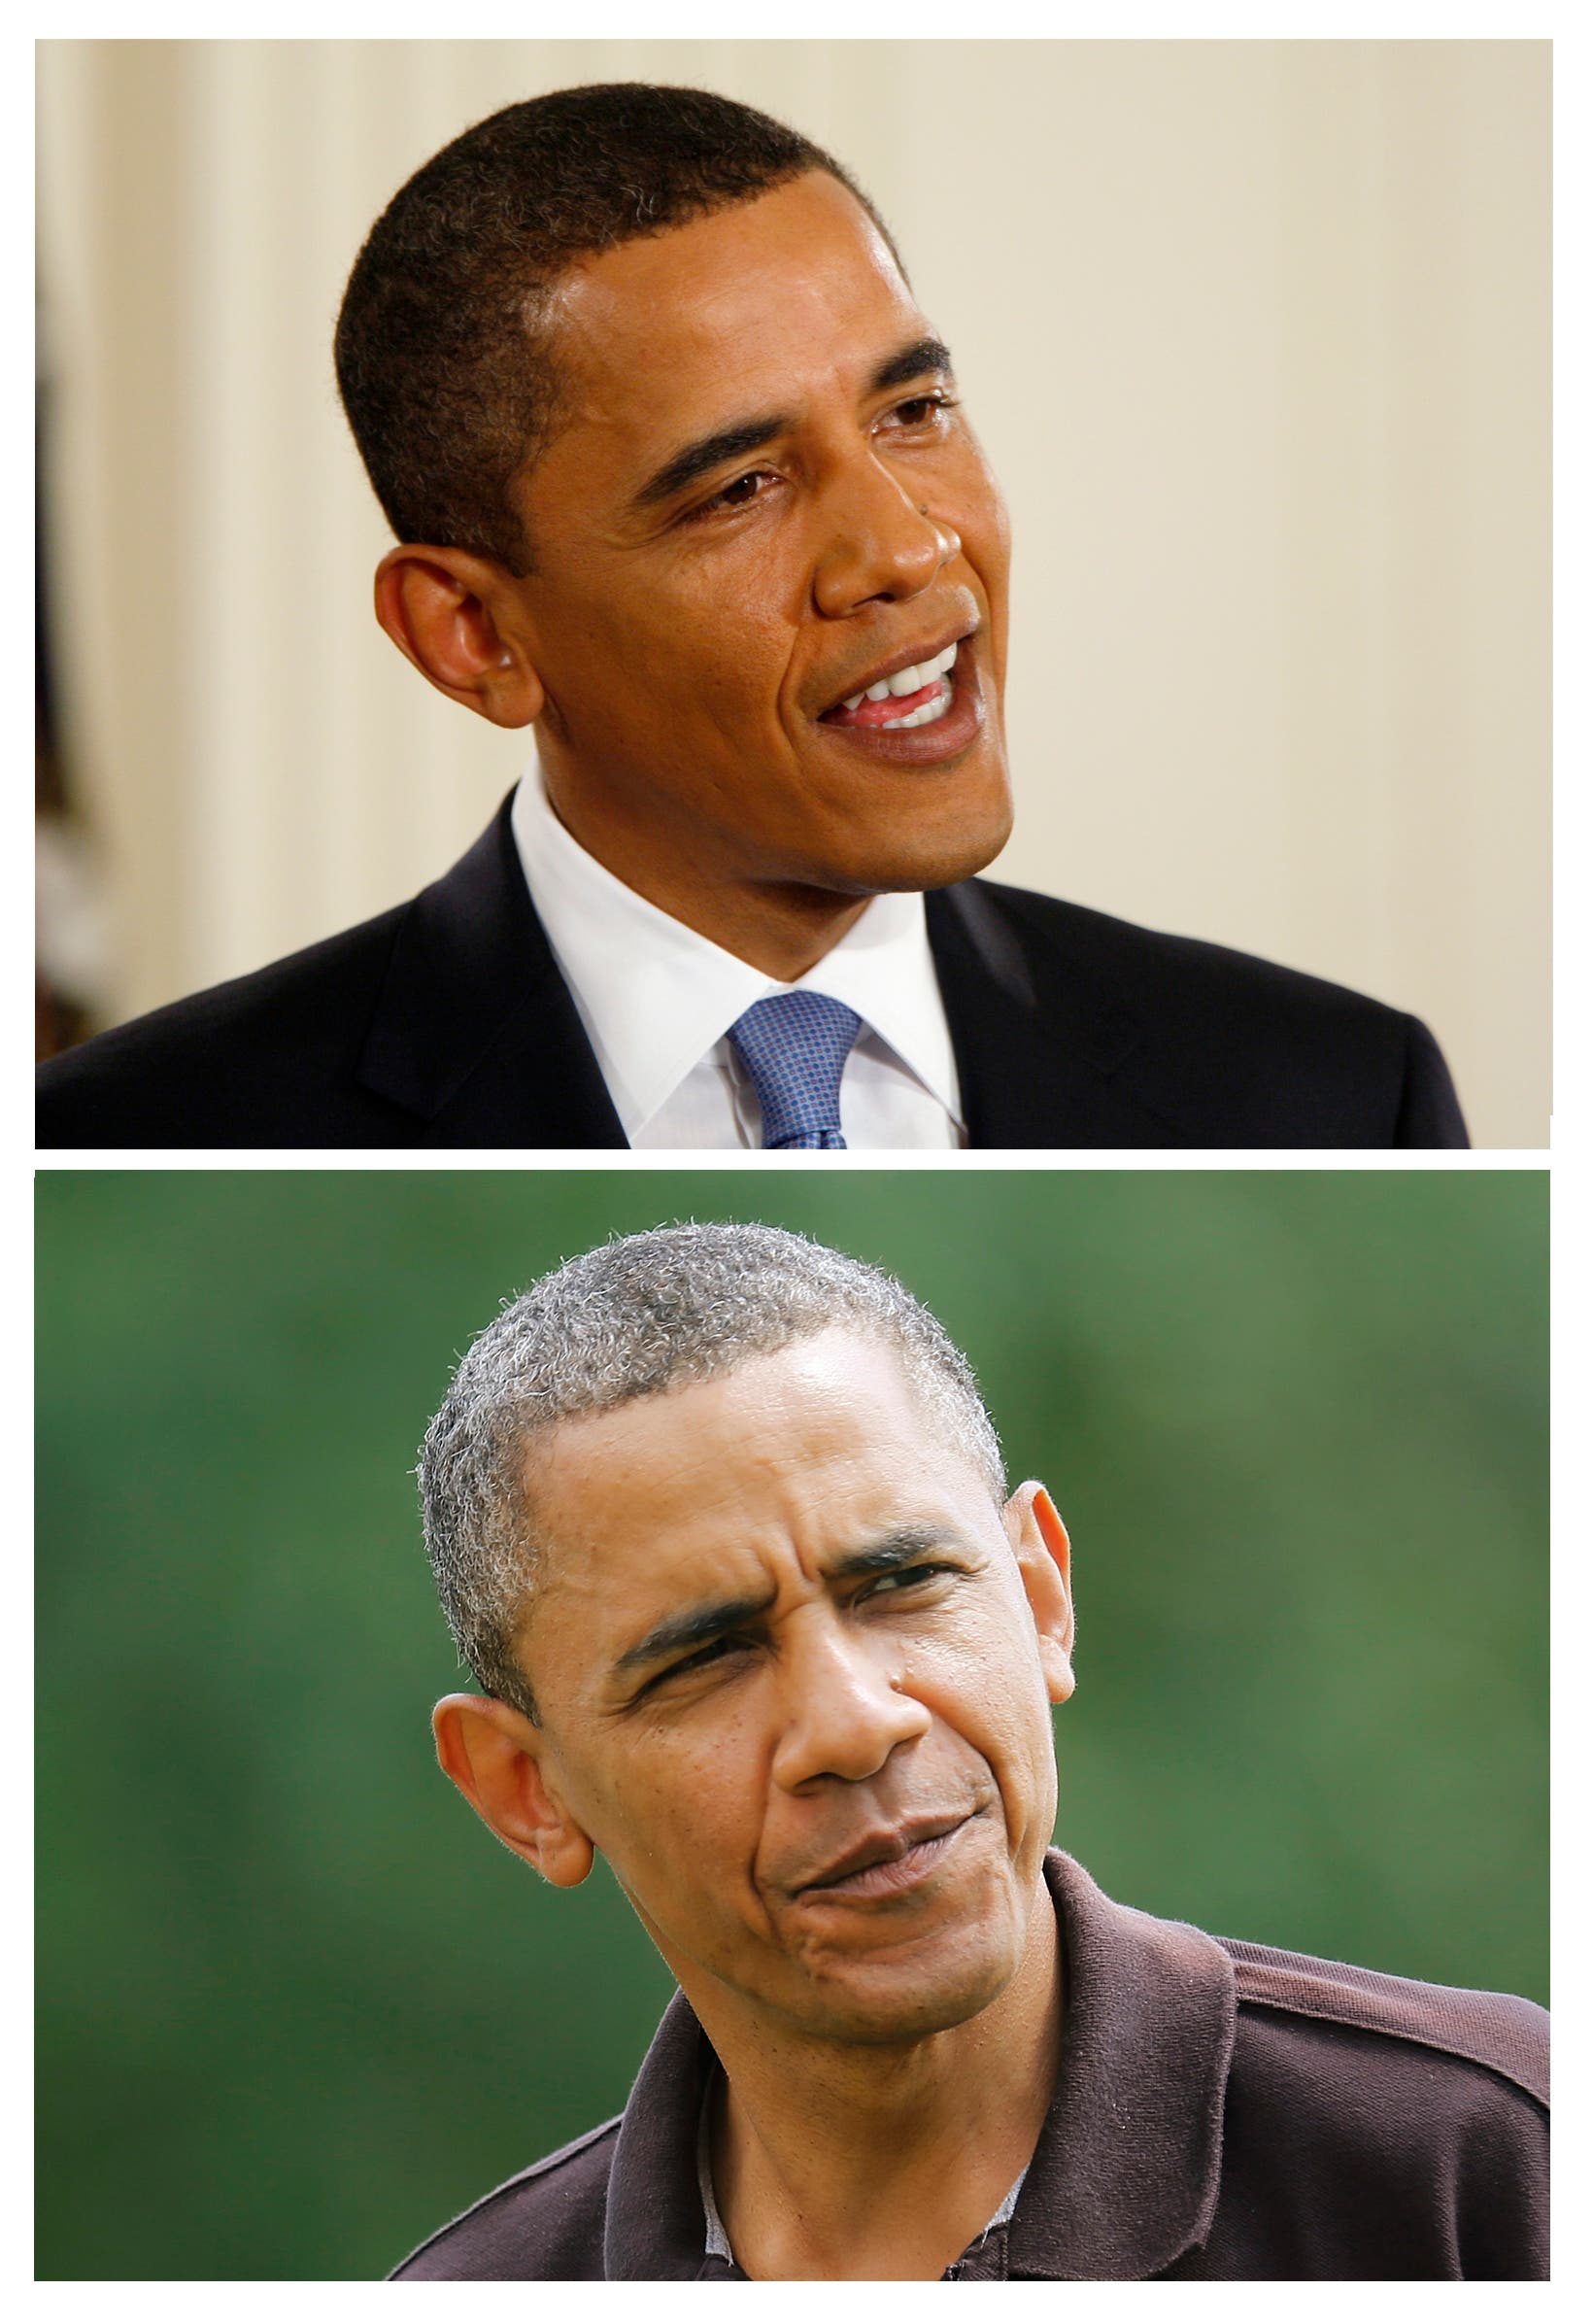 obama b4 and after